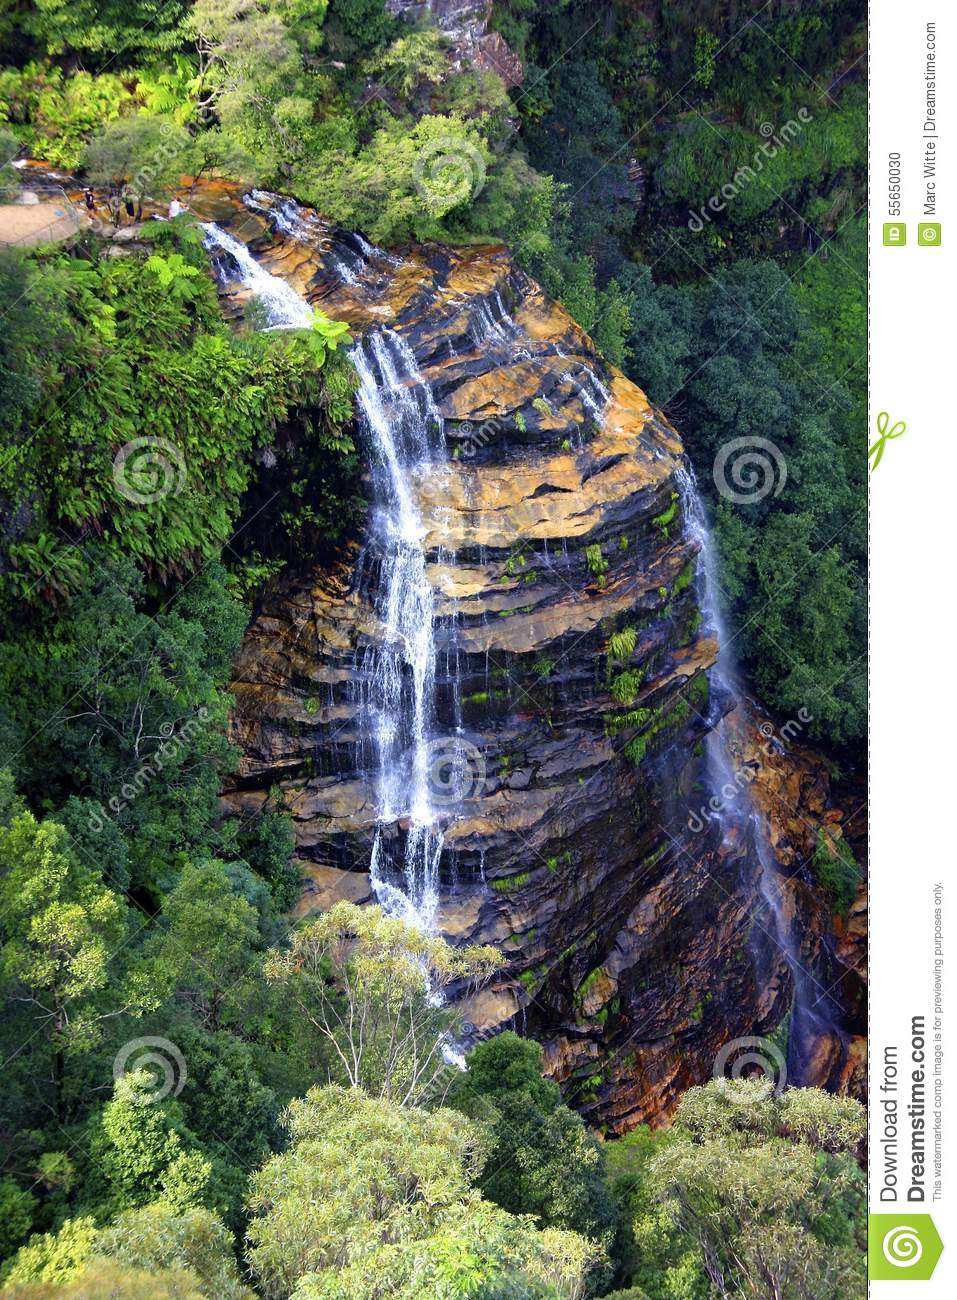 Wentworth Falls clipart #5, Download drawings